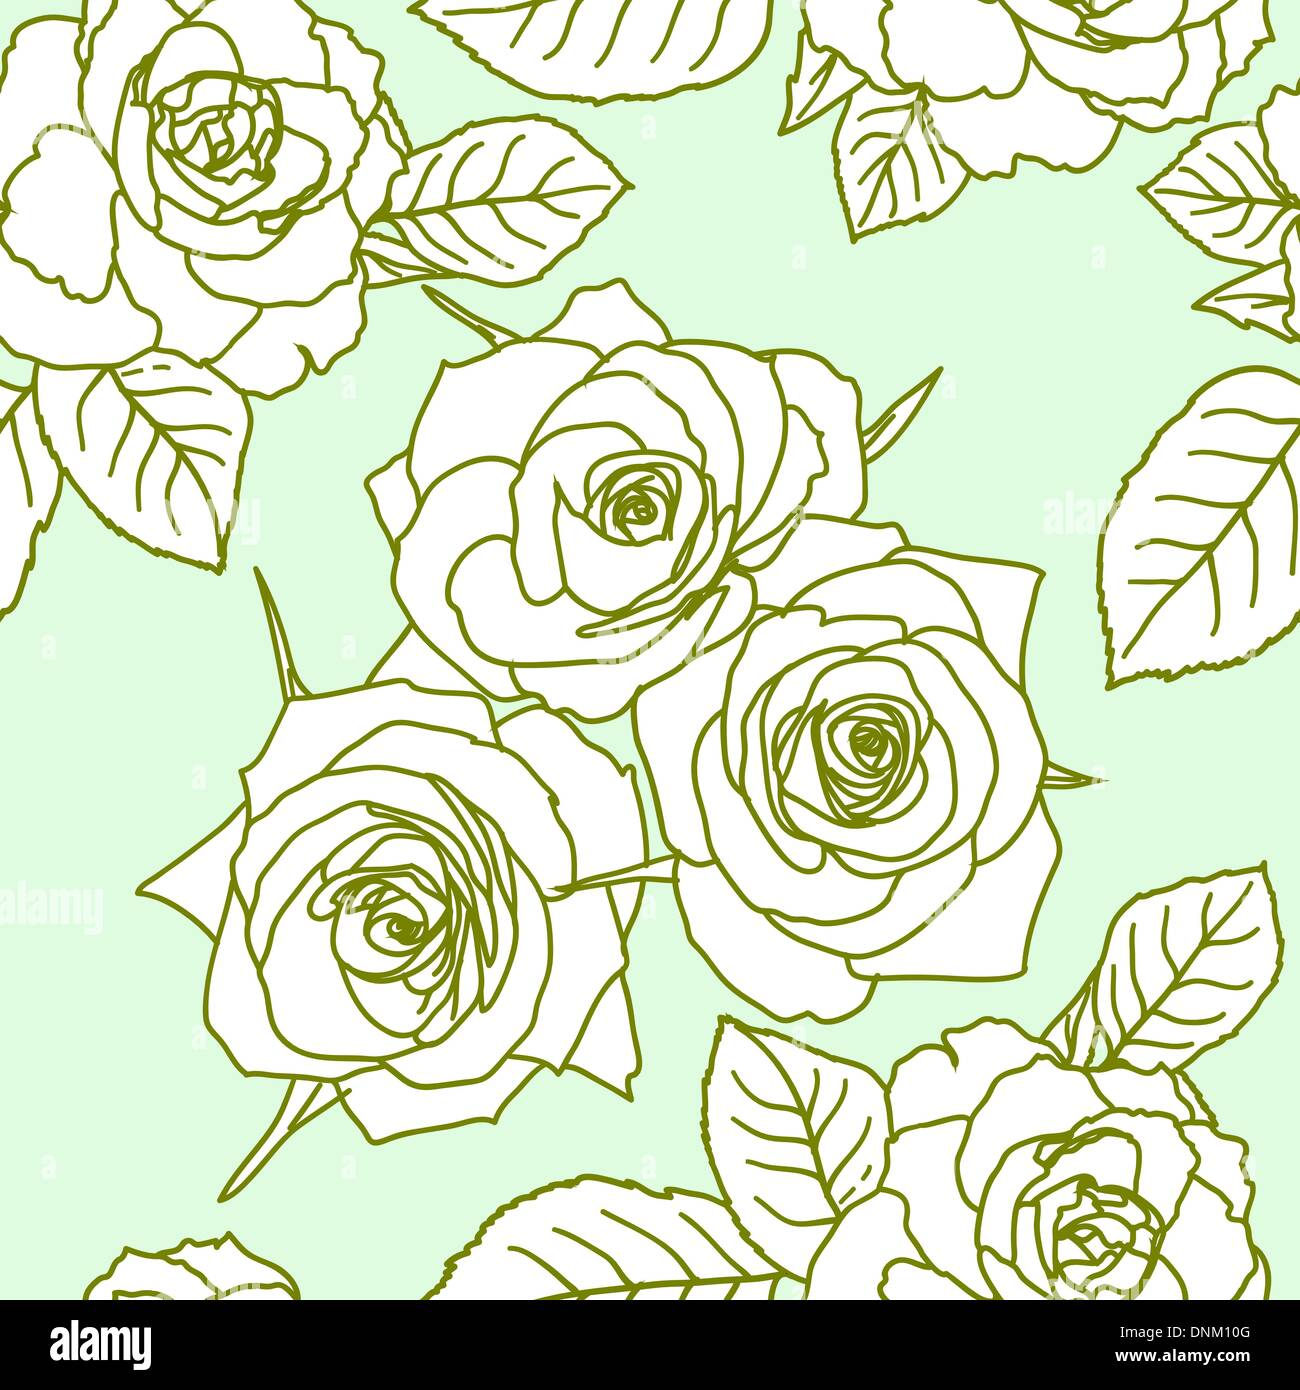 Seamless wallpaper with rose flowers - Stock Image